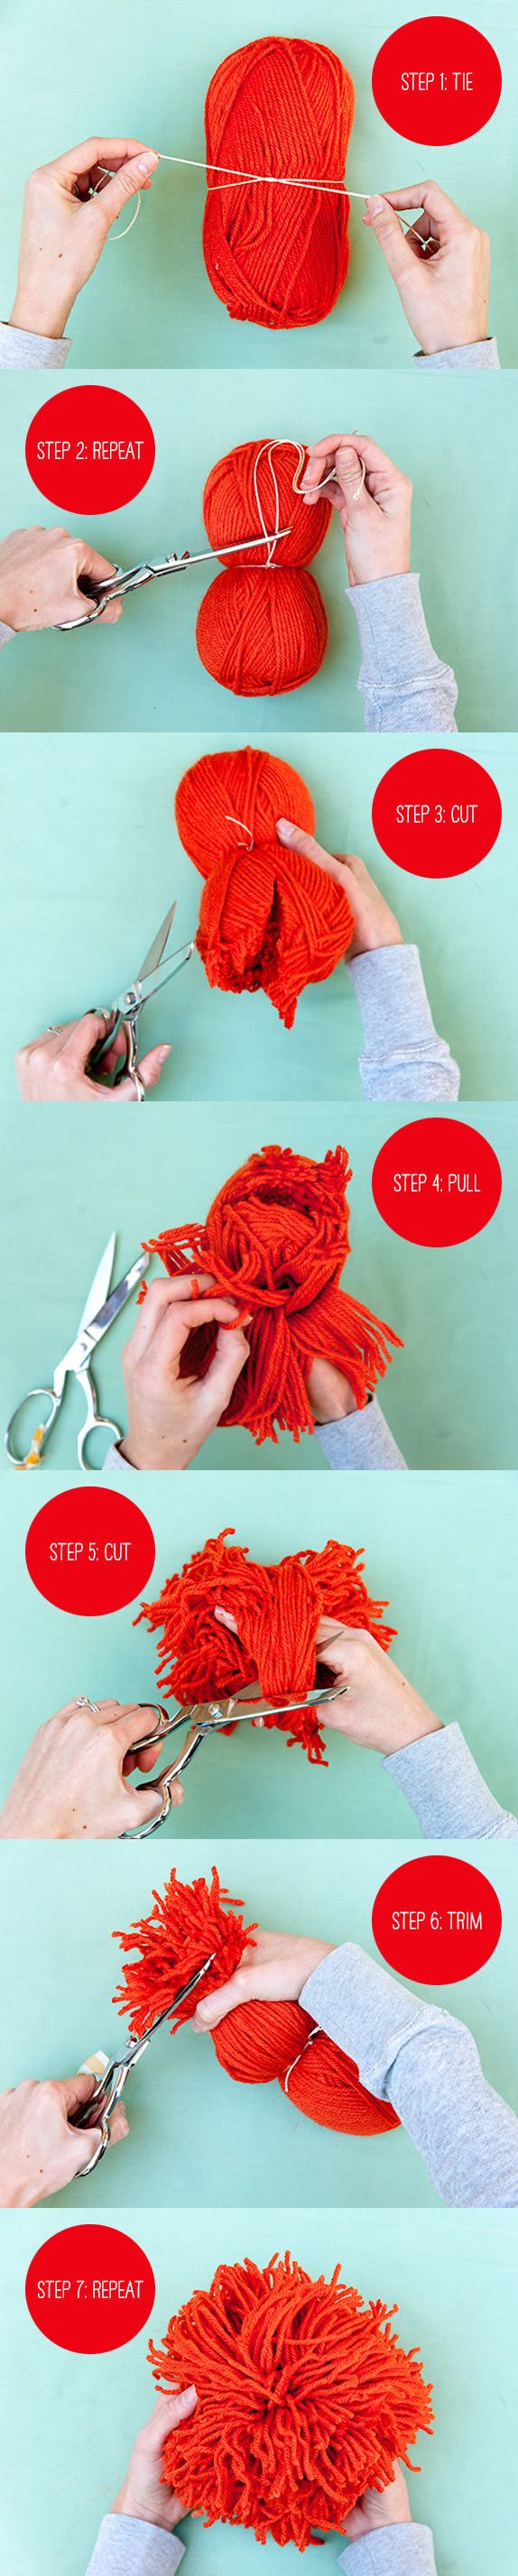 Make the biggest pom-pom you've ever imagined with an entire skein of yarn.